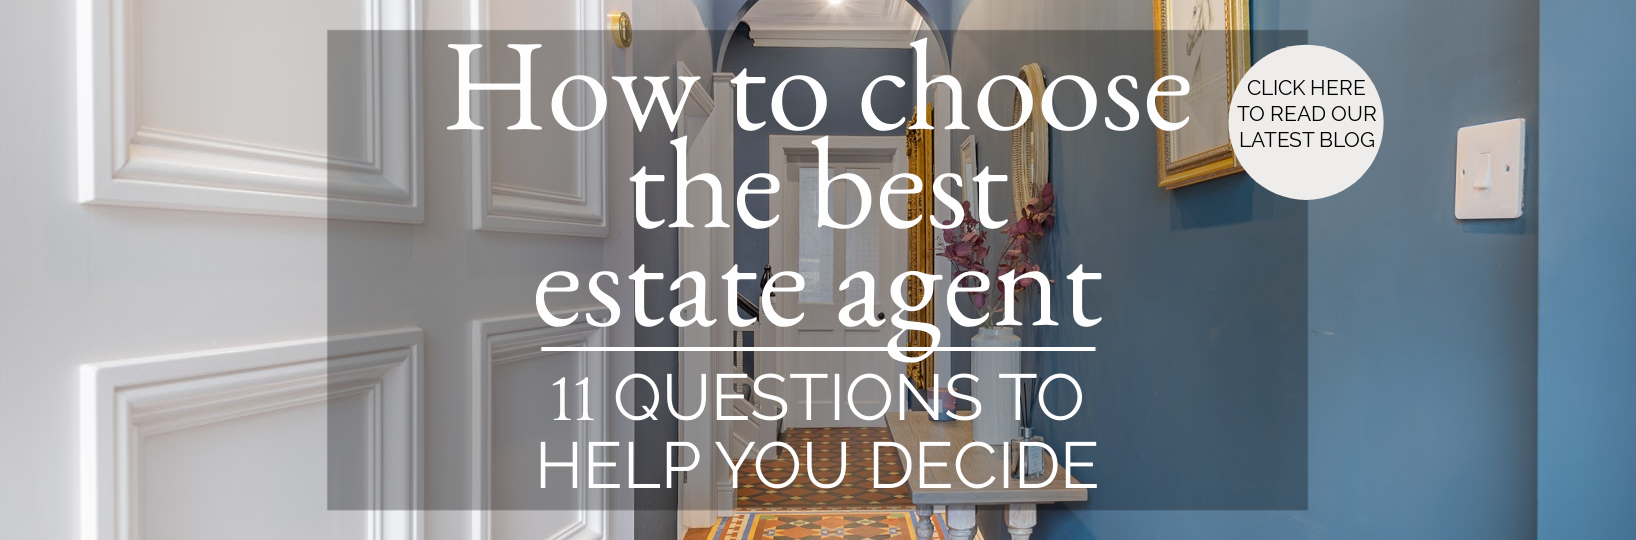 facebook-cover-art-how-to-choose-the-best-estate-agent